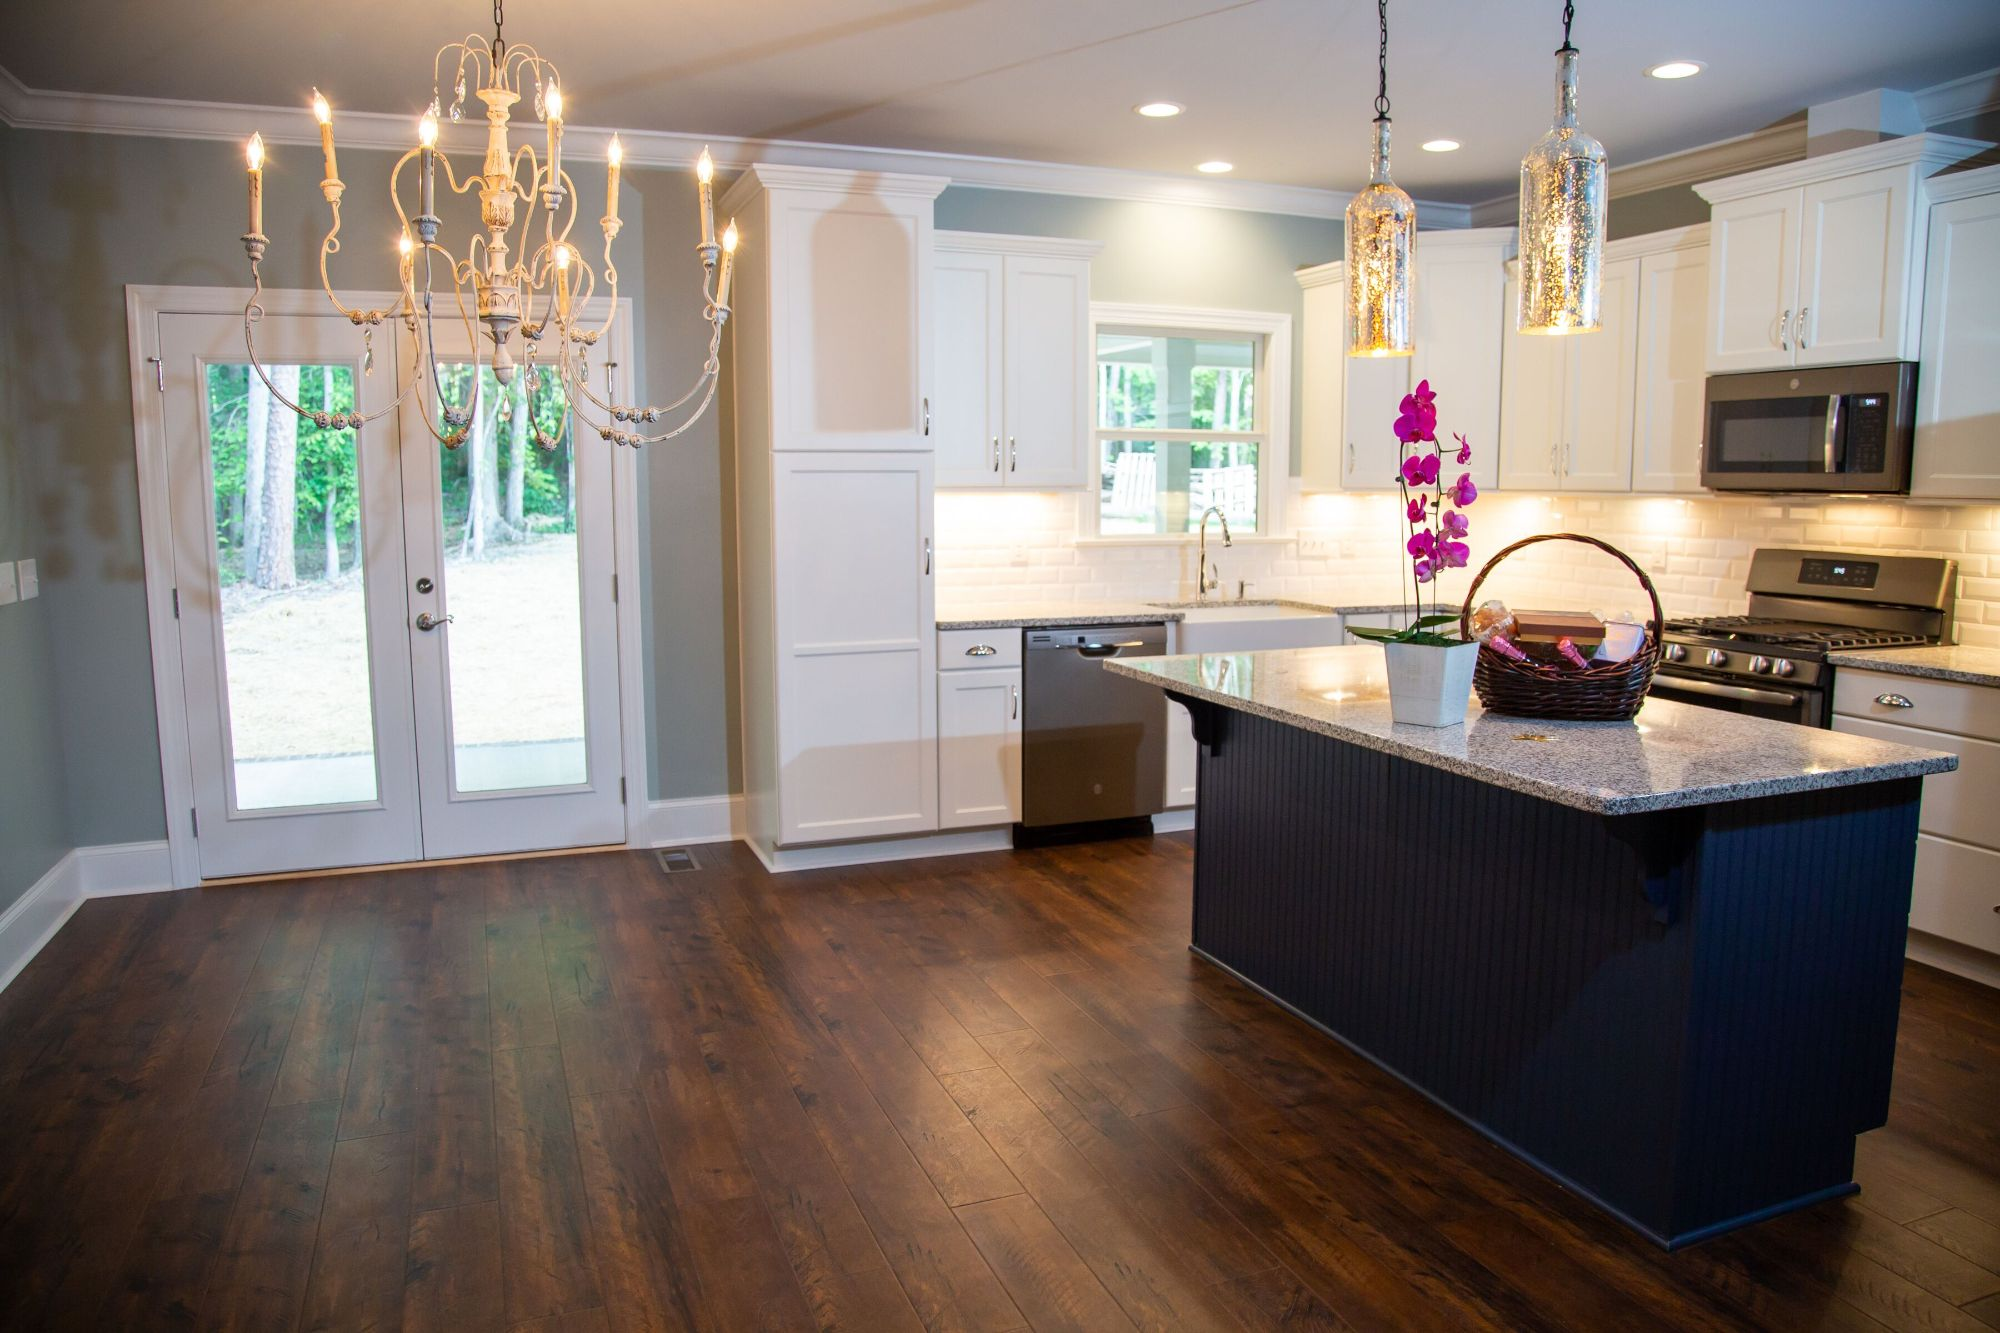 Custom Homes Construction Options and Features /static/media/3.36ac22f3.jpg